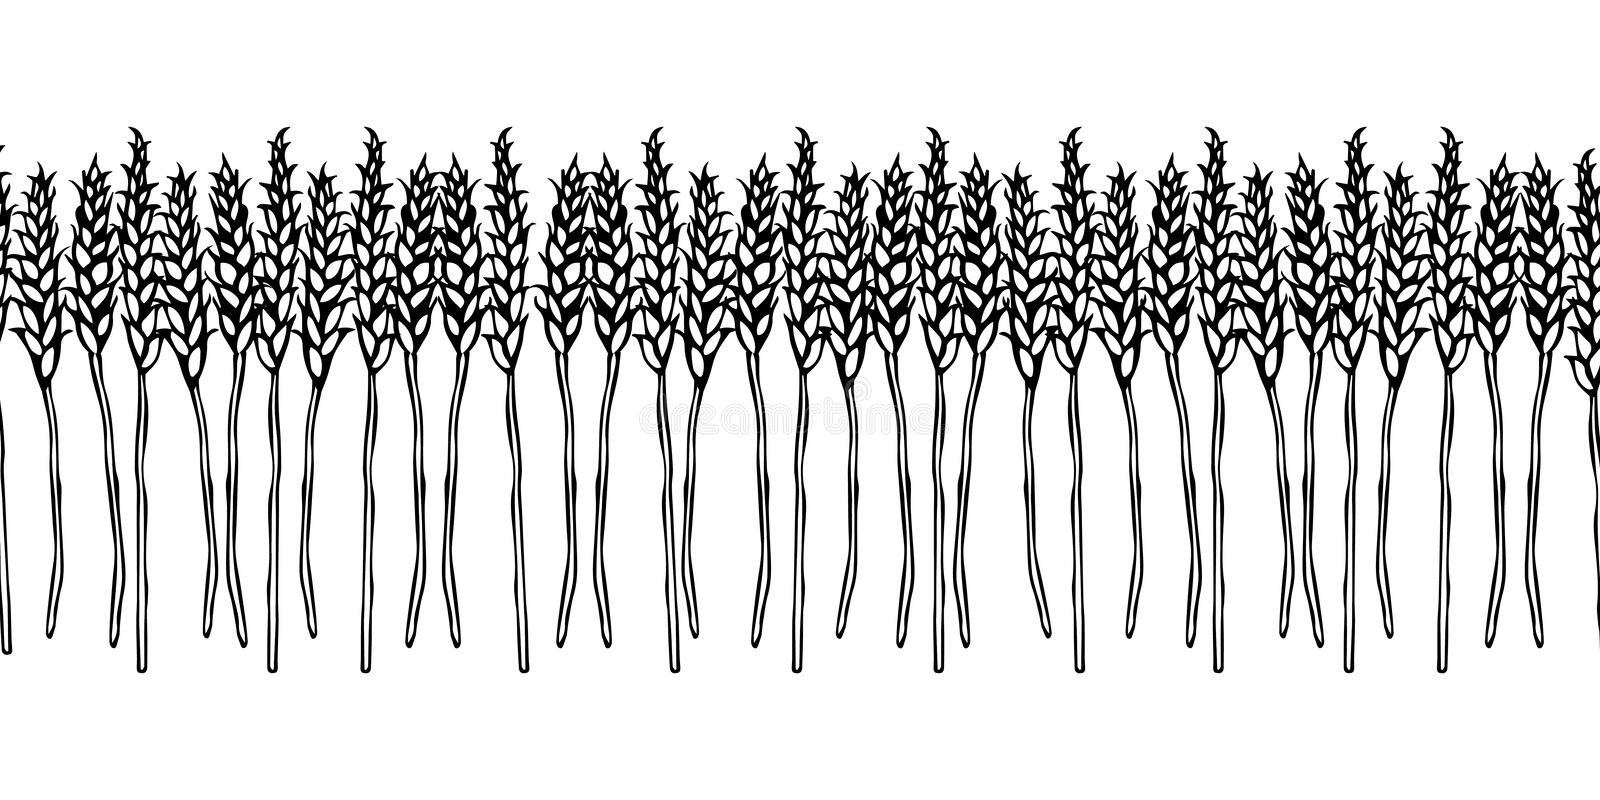 Ripe Wheat Spikelets Endless Brush. Border Ribbon of Malt with Space for Text. Farm Harvest Template. Realistic Hand Drawn Illustr. Ation. Savoyar Doodle Style vector illustration